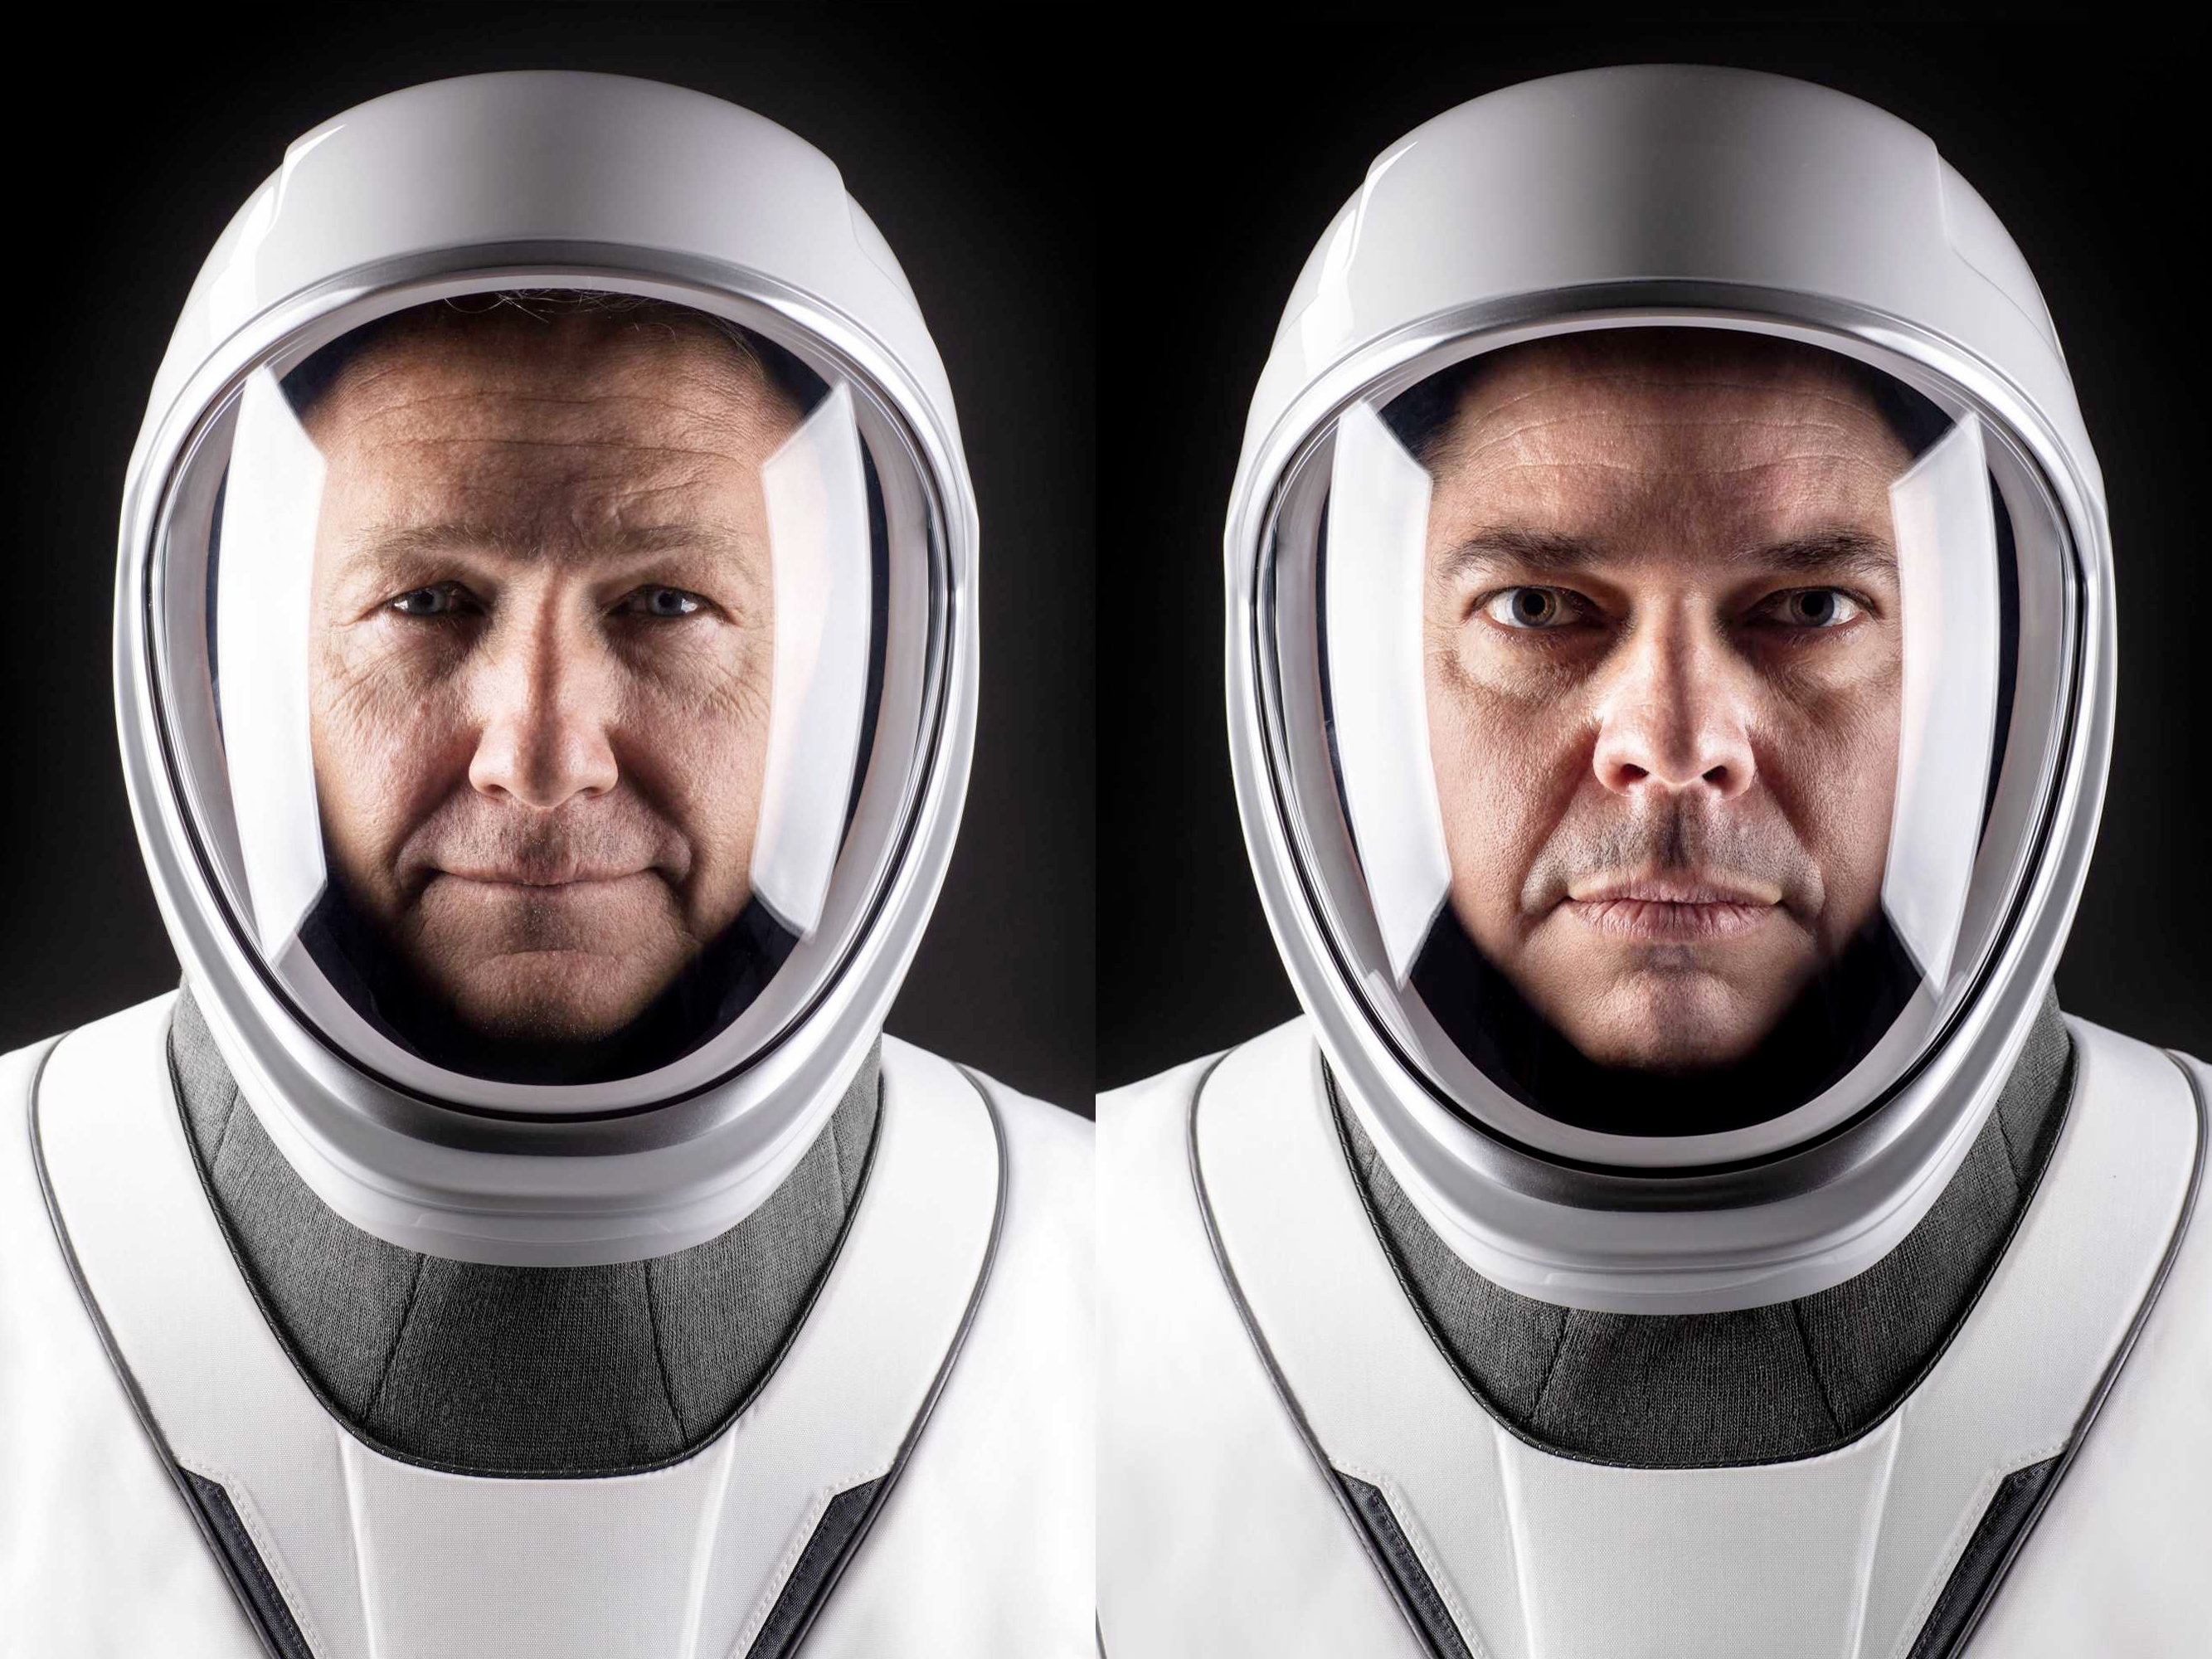 NASA astronauts Bob Behnken and Doug Hurley will be the first to fly SpaceX's Crew Dragon ...